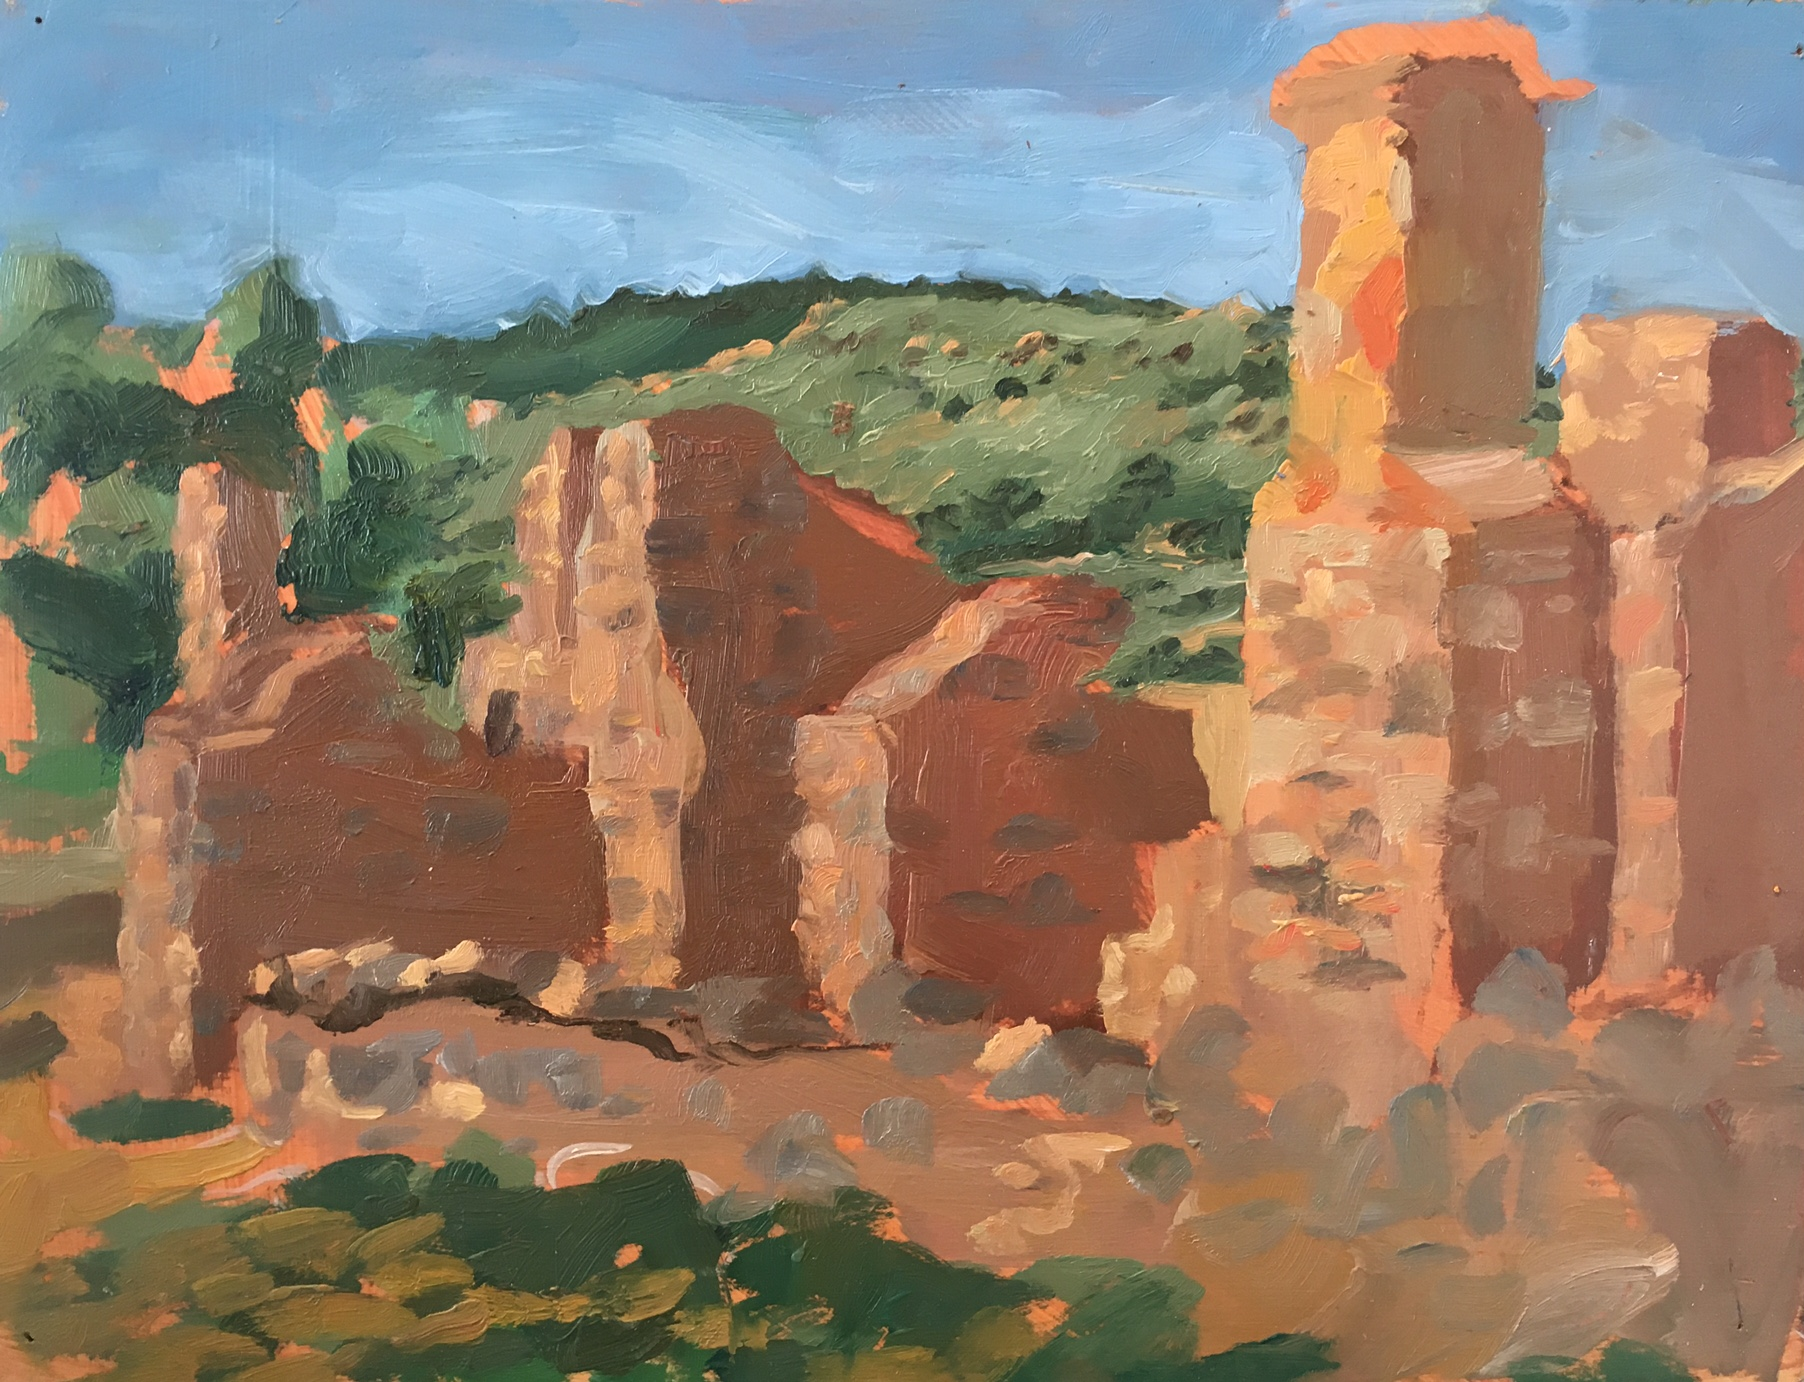 Kanyaka Homestead sketch, Oil on panel, 34 x 26 Oil on panel, 2013